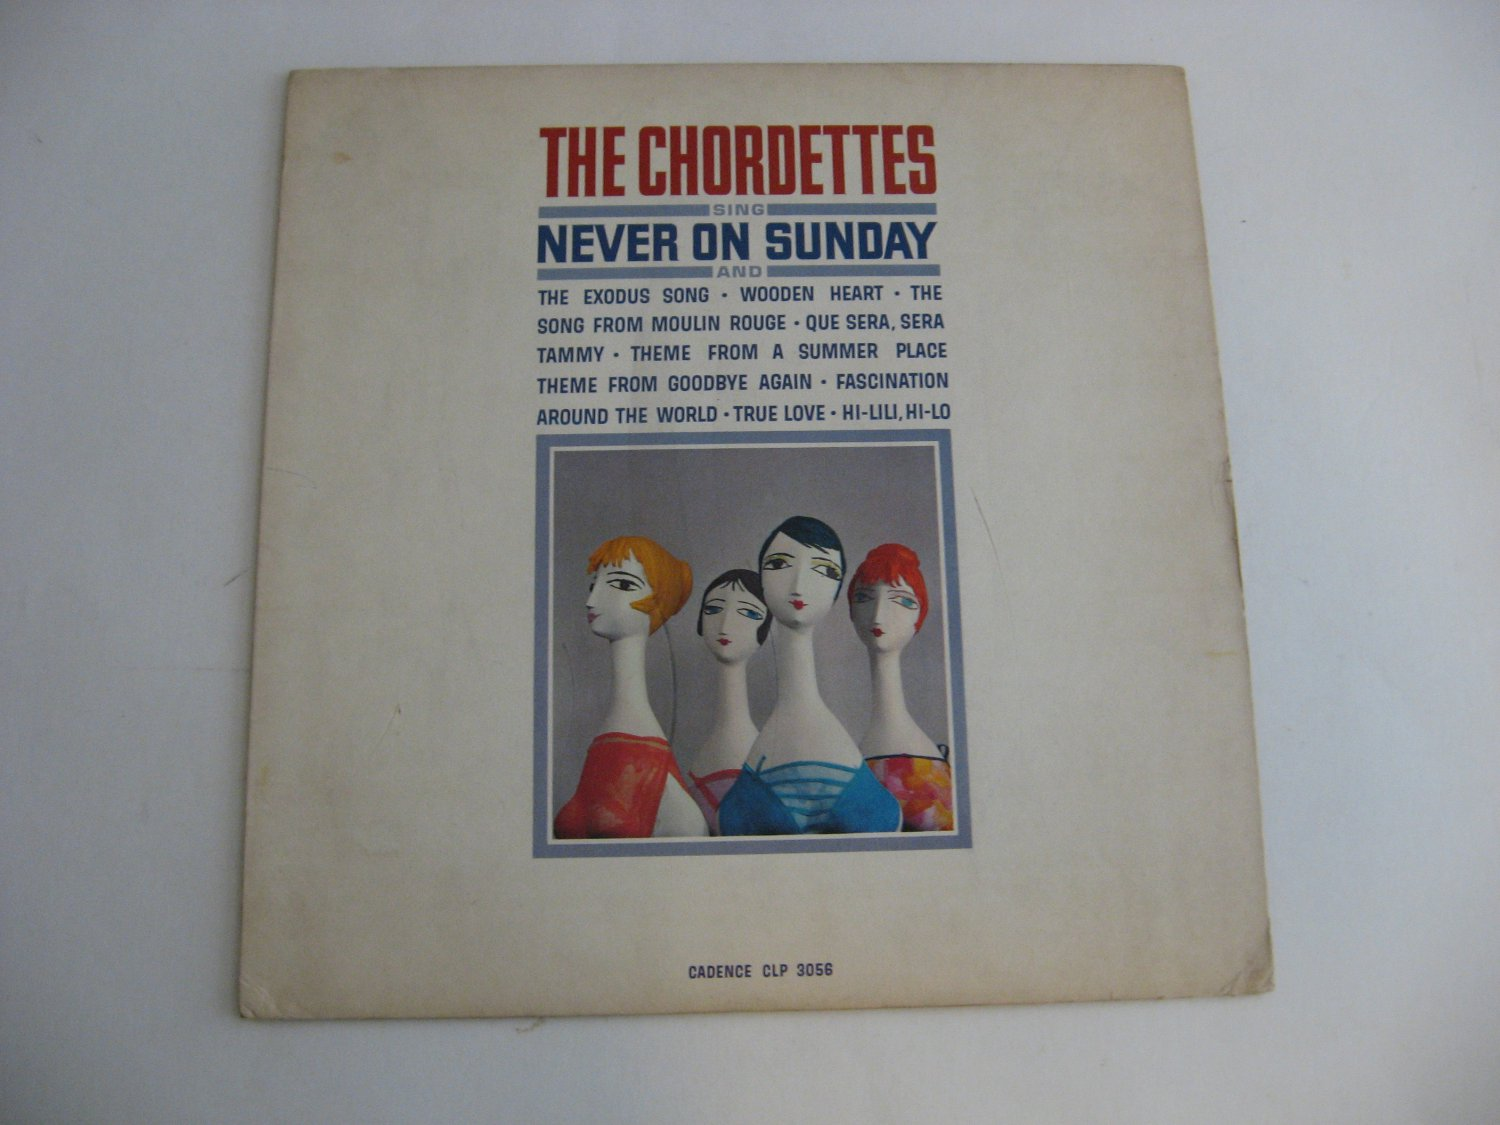 The Chordettes - Never On Sunday - Circa 1962